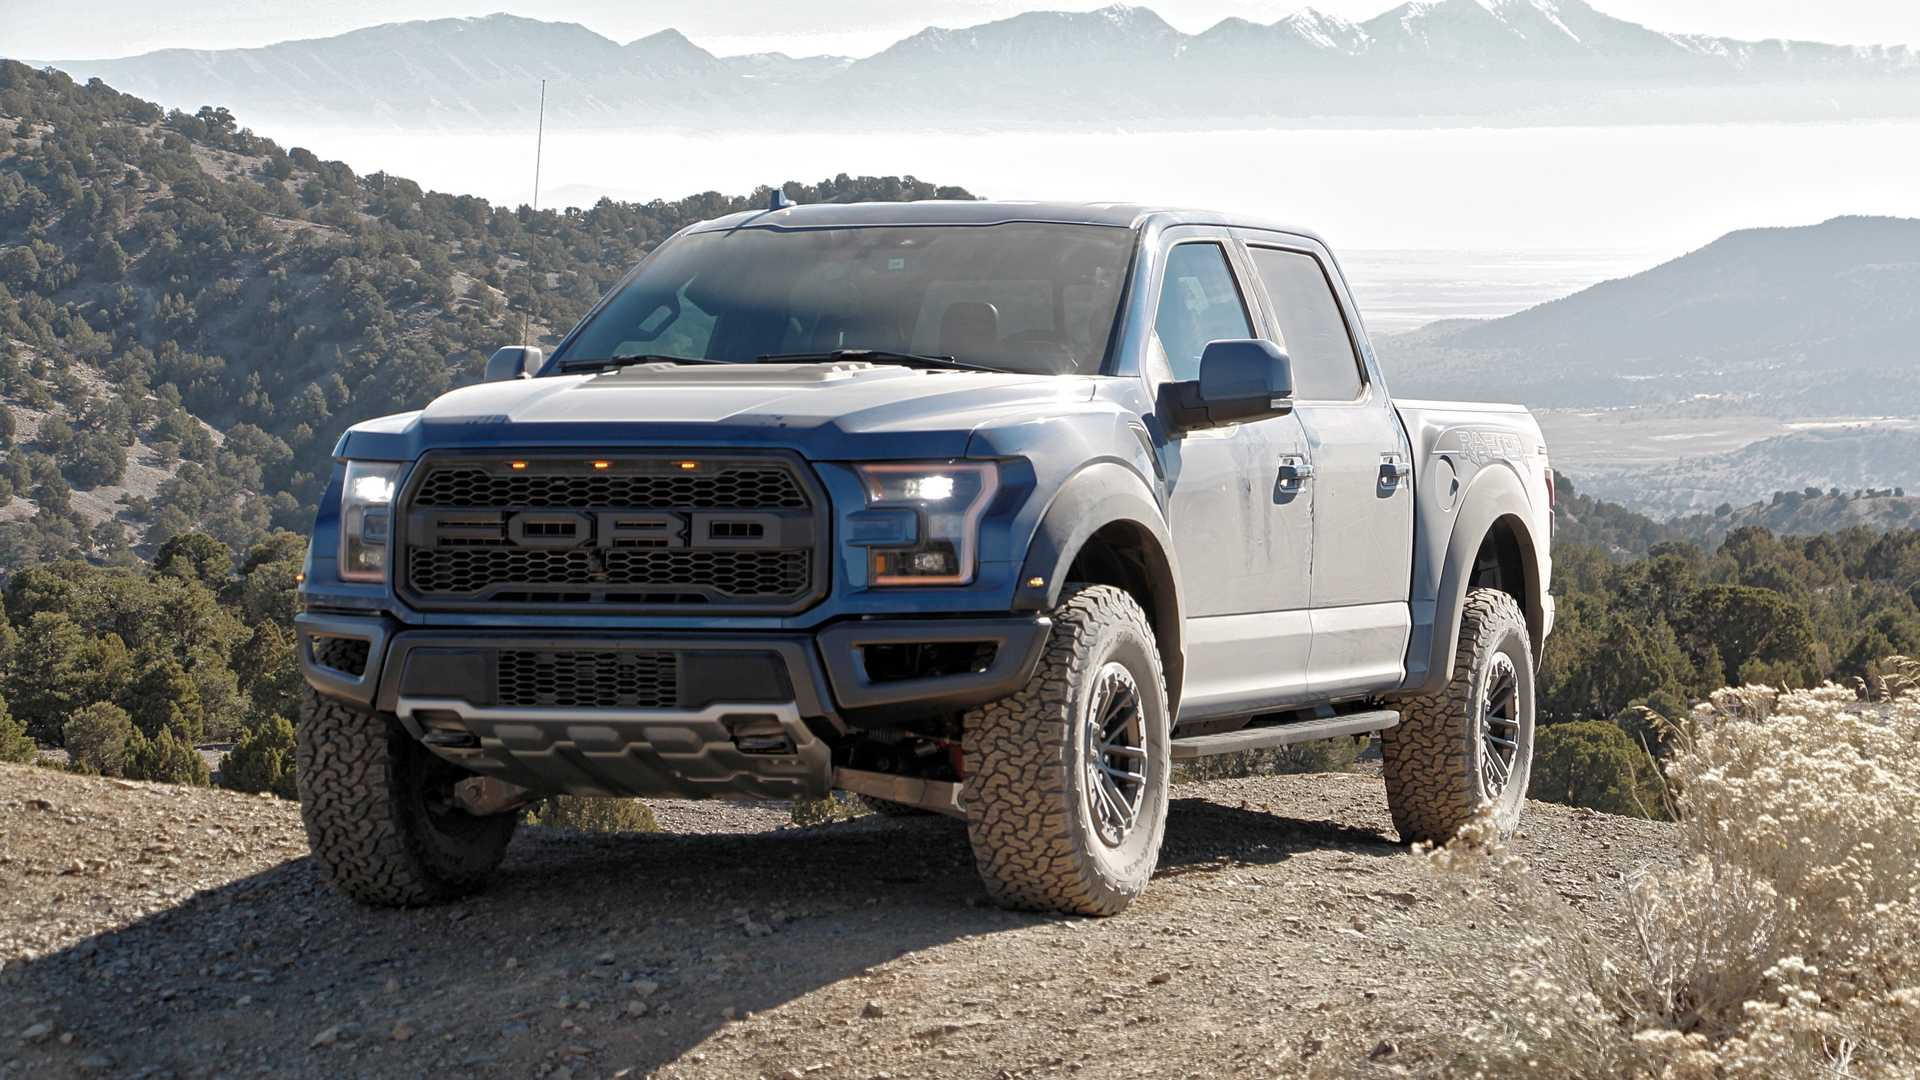 90 Concept of 2019 Ford F150 Quad Cab First Drive Exterior and Interior by 2019 Ford F150 Quad Cab First Drive